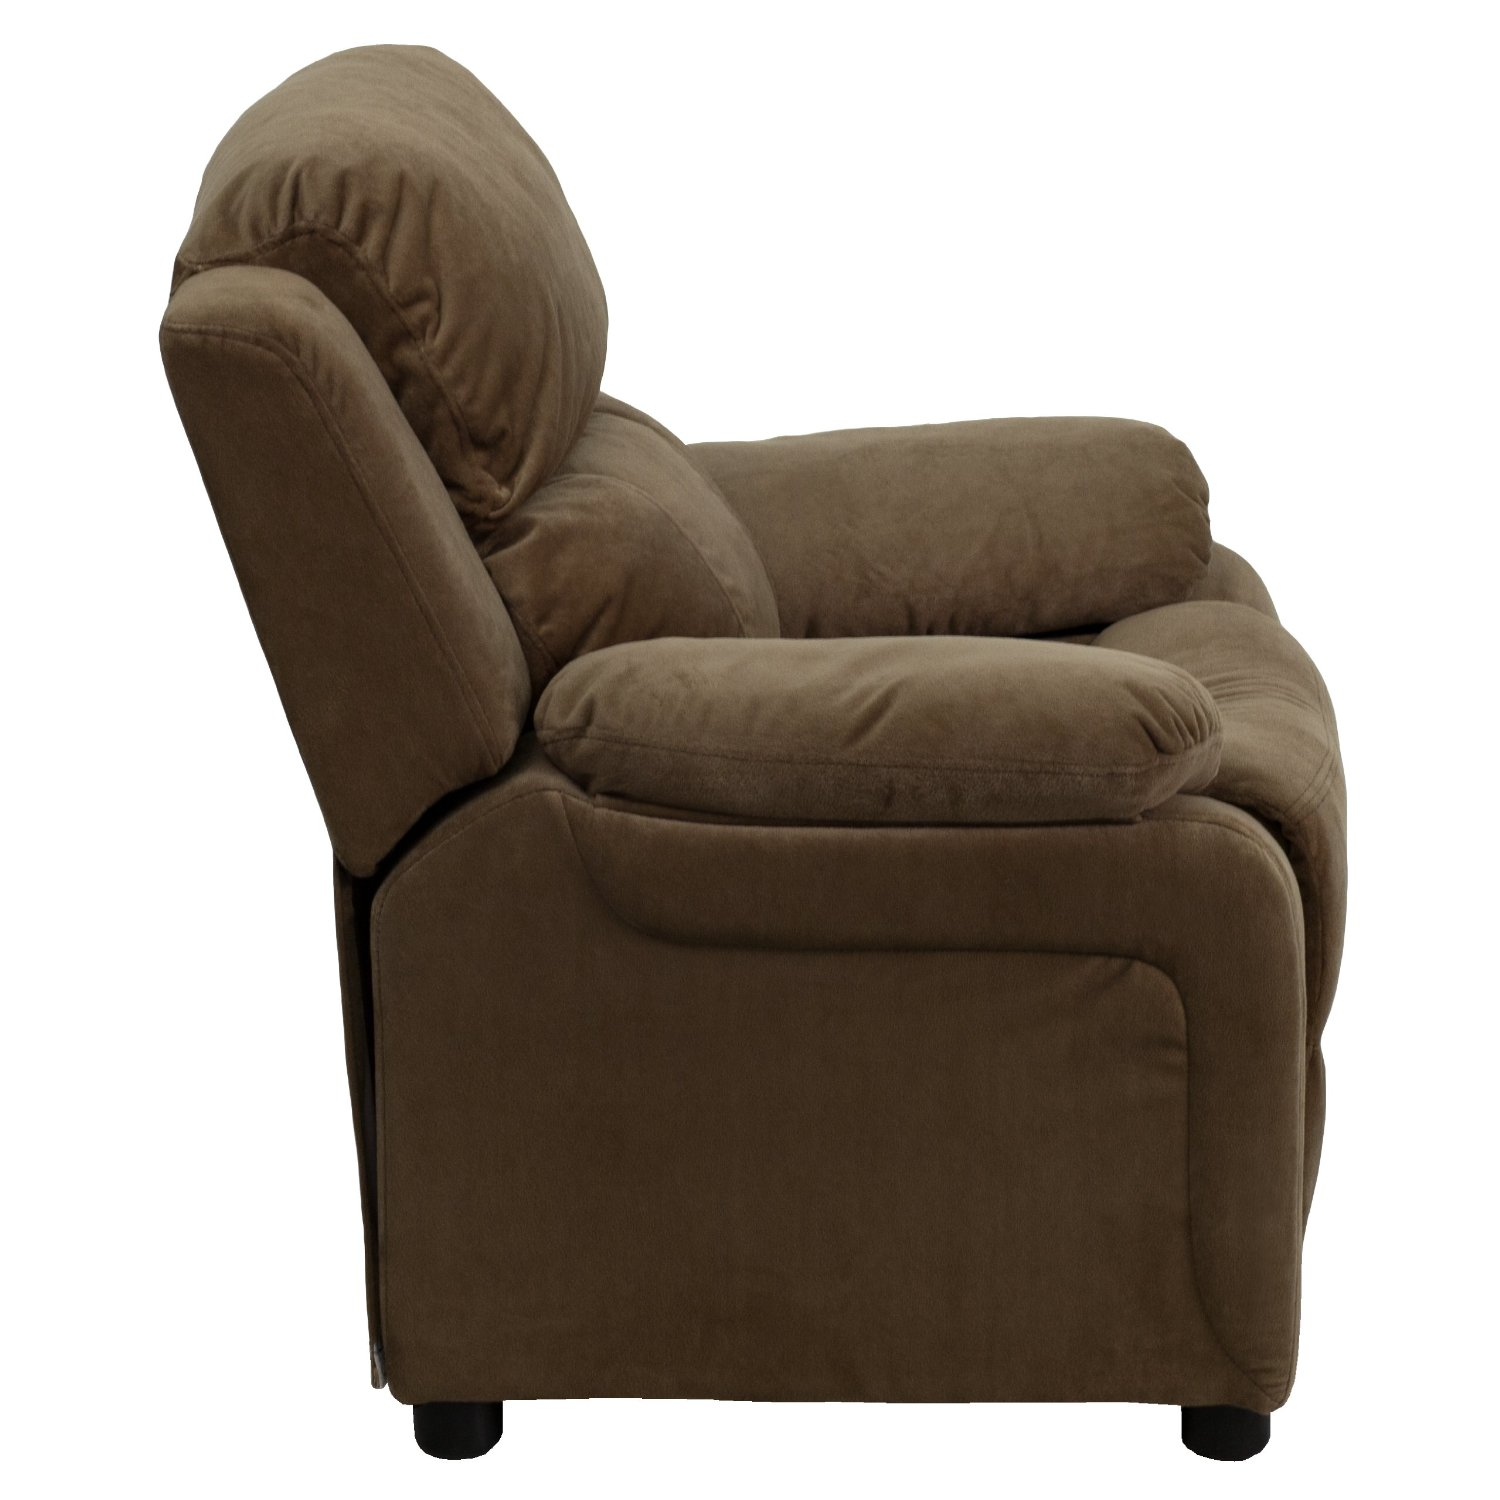 Deluxe Heavily Padded Contemporary Microfiber Kids Recliner